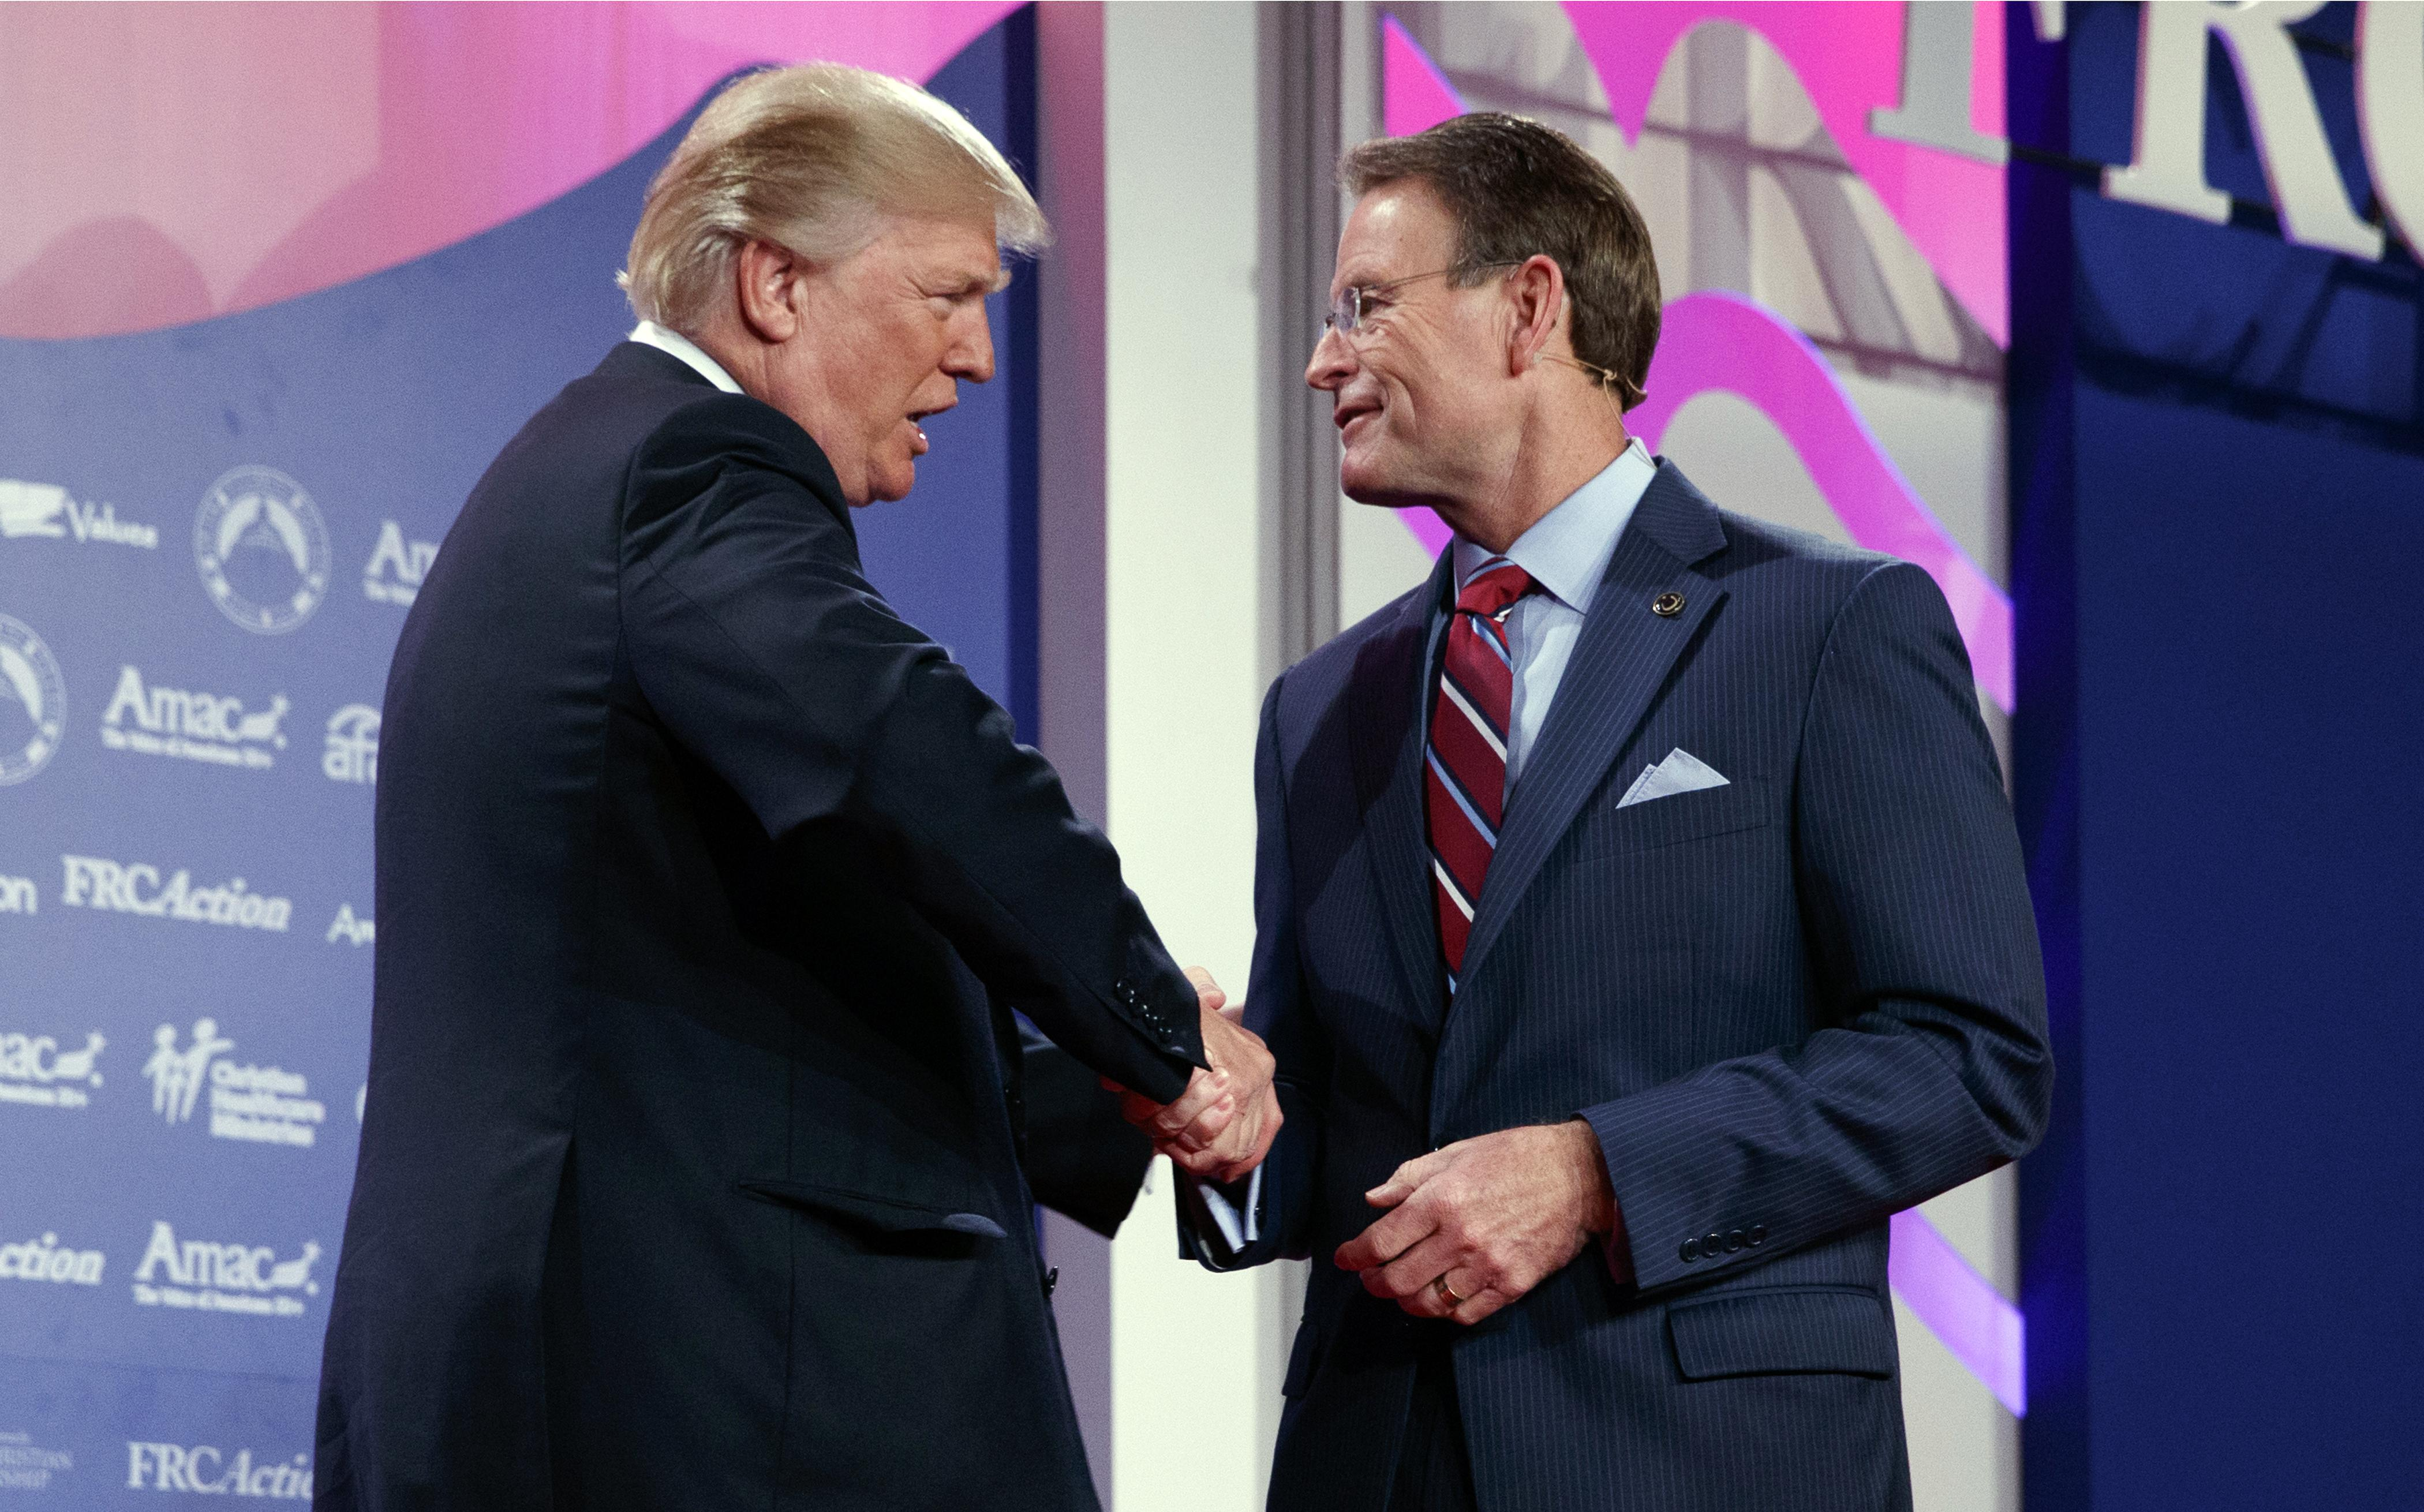 Donald Trump shakes hands with Family Research Council president Tony Perkins at the 2017 Value Voters Summit, Friday, Oct. 13, 2017, in Washington.